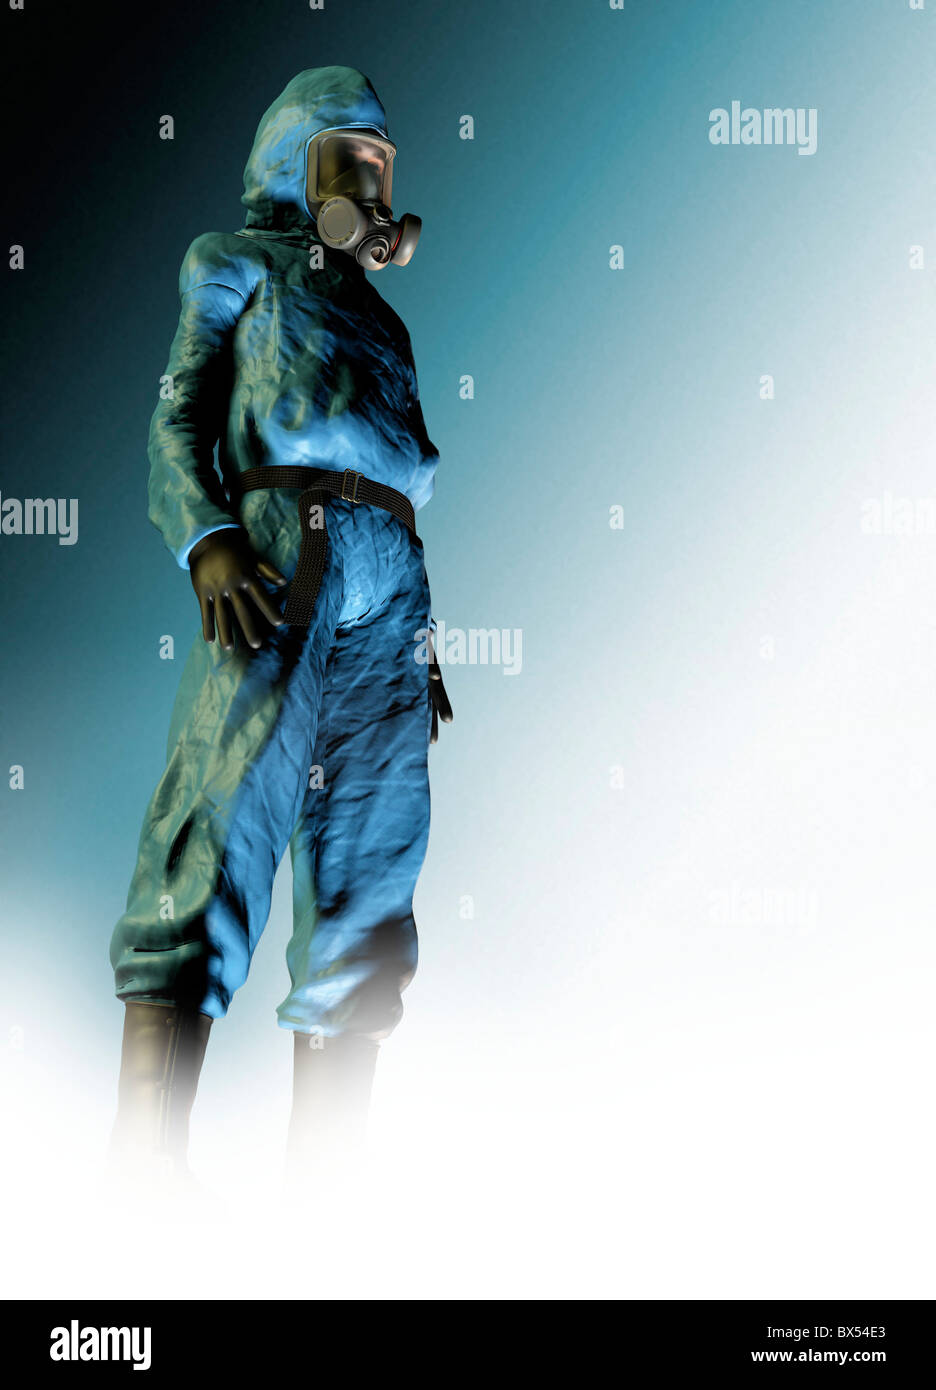 Isolation suit - Stock Image